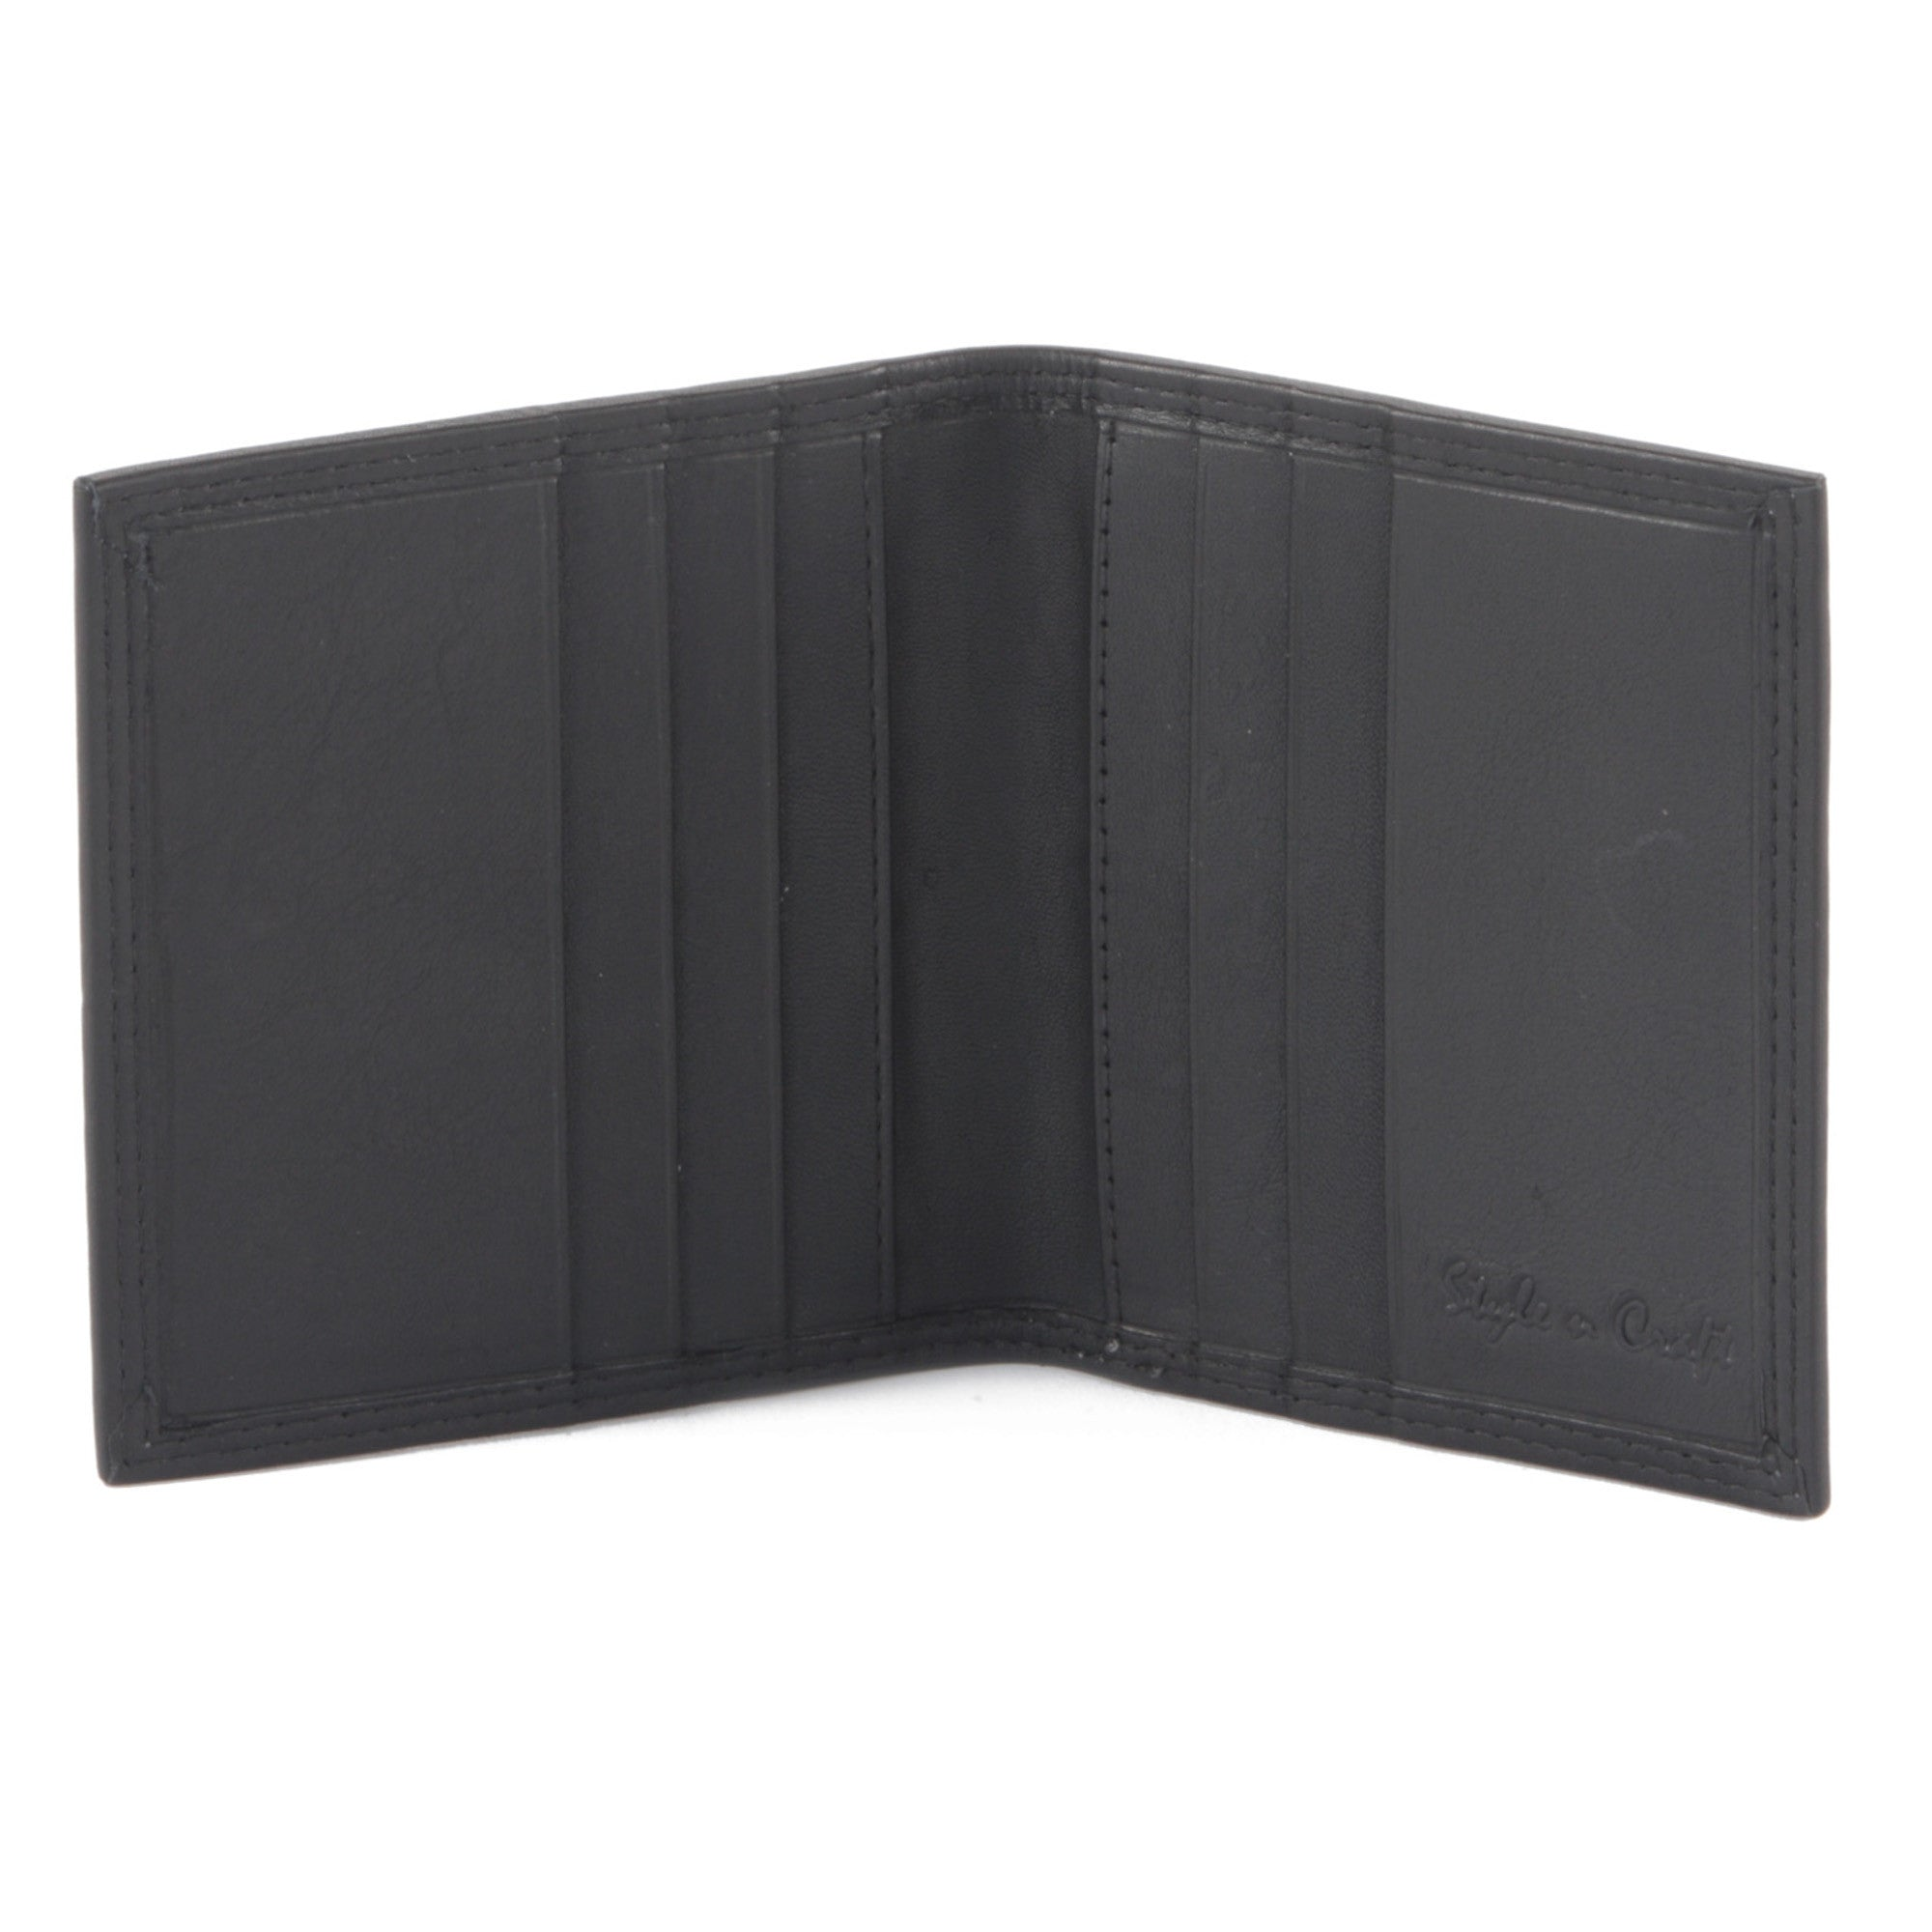 Style n Craft 300703-BL Credit Card / Business Card Case in Black Leather - Open View